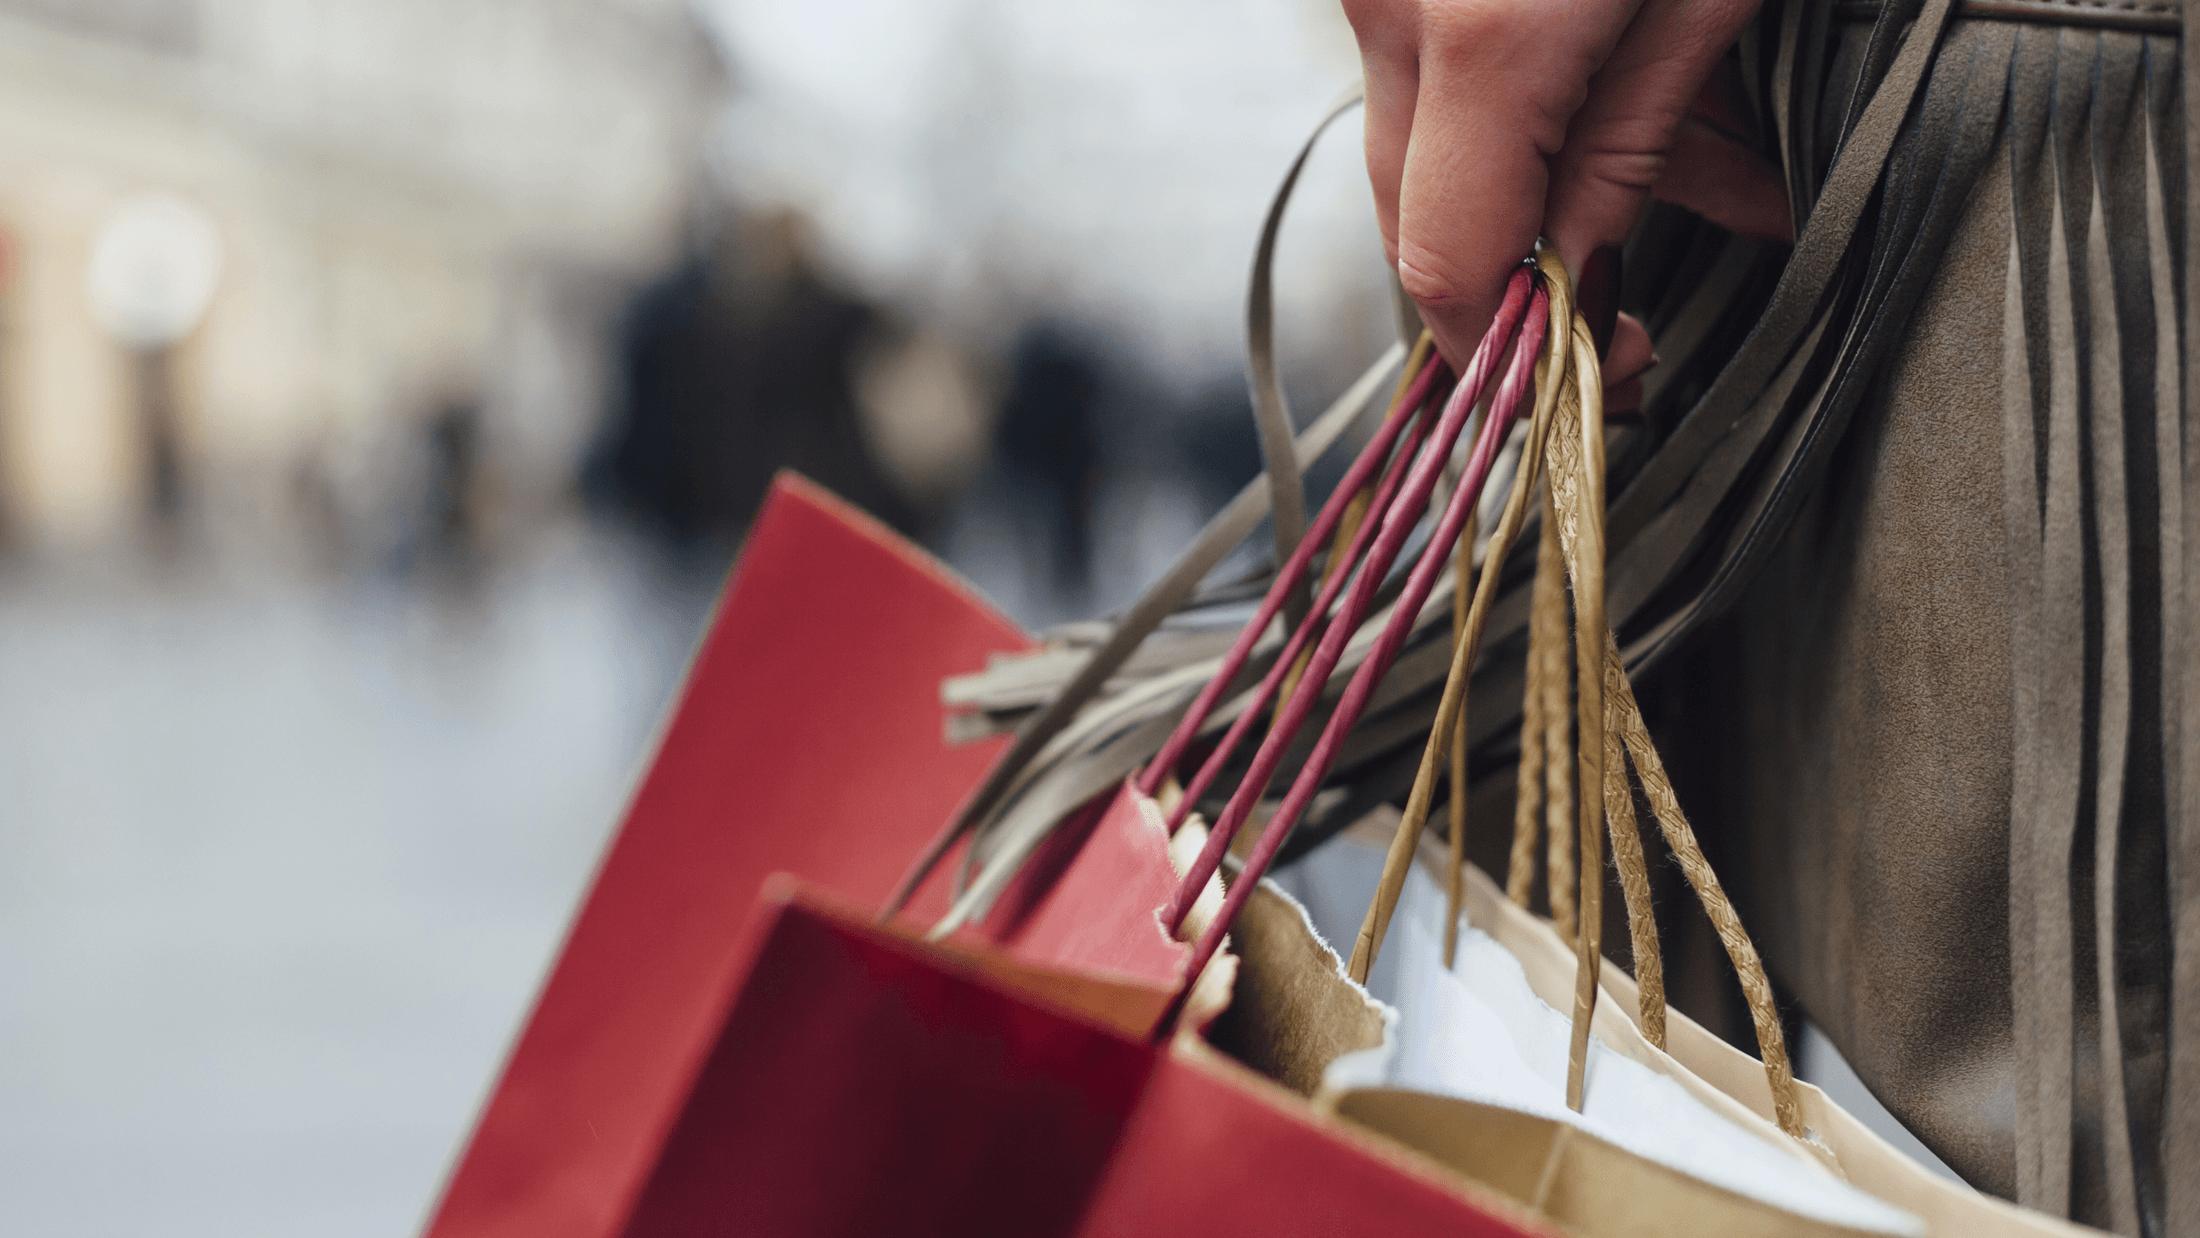 Consumer Trends in the Retail Industry: The Power of the Disgruntled Consumer